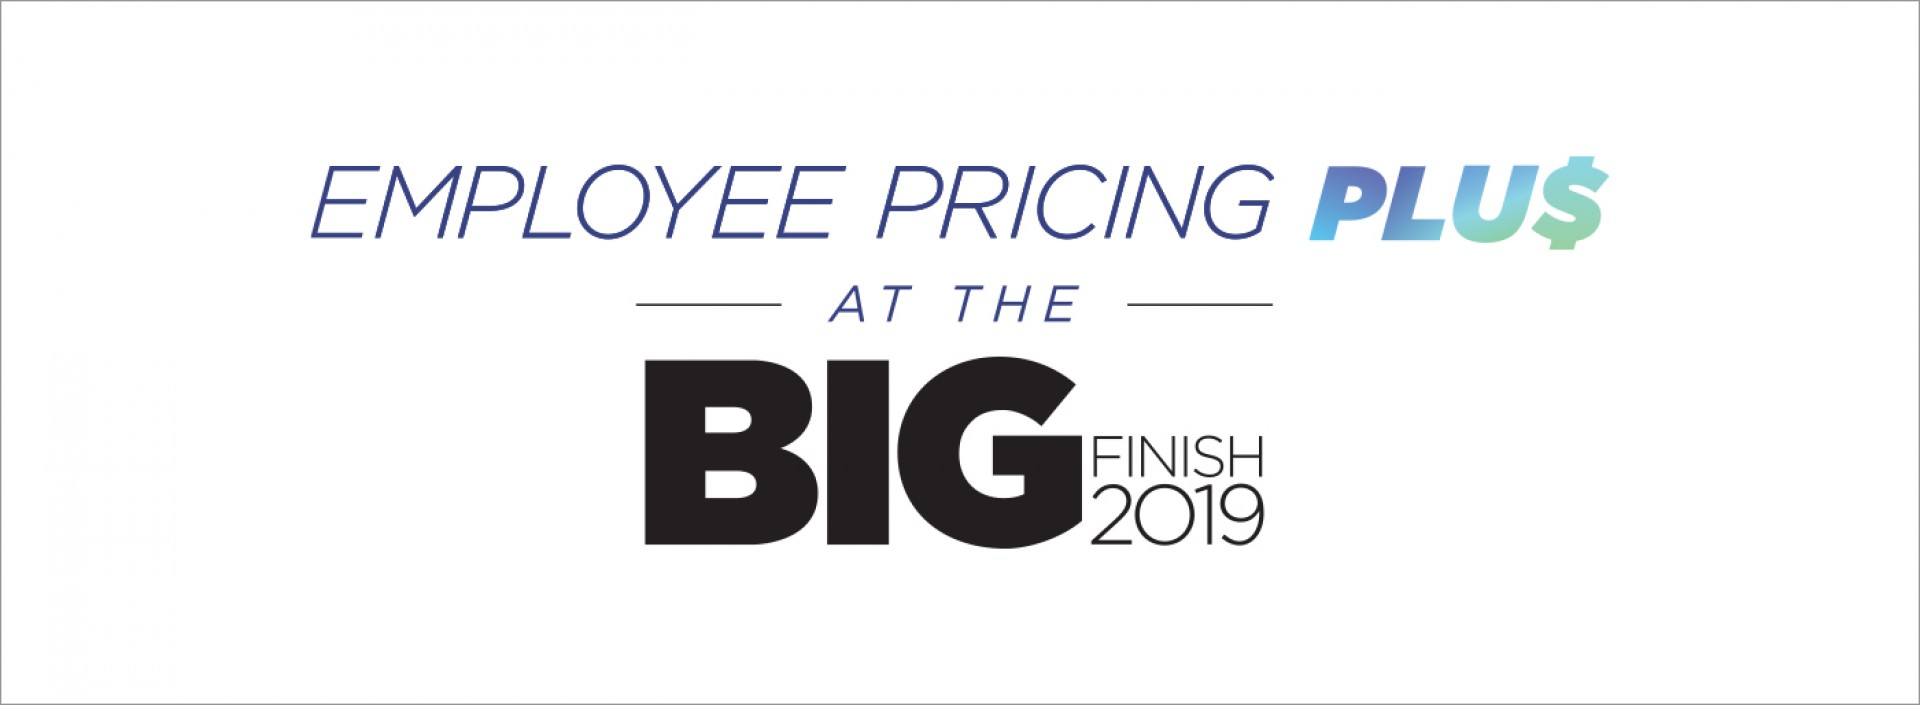 Employee Pricing Plus at the Big Finish 2019